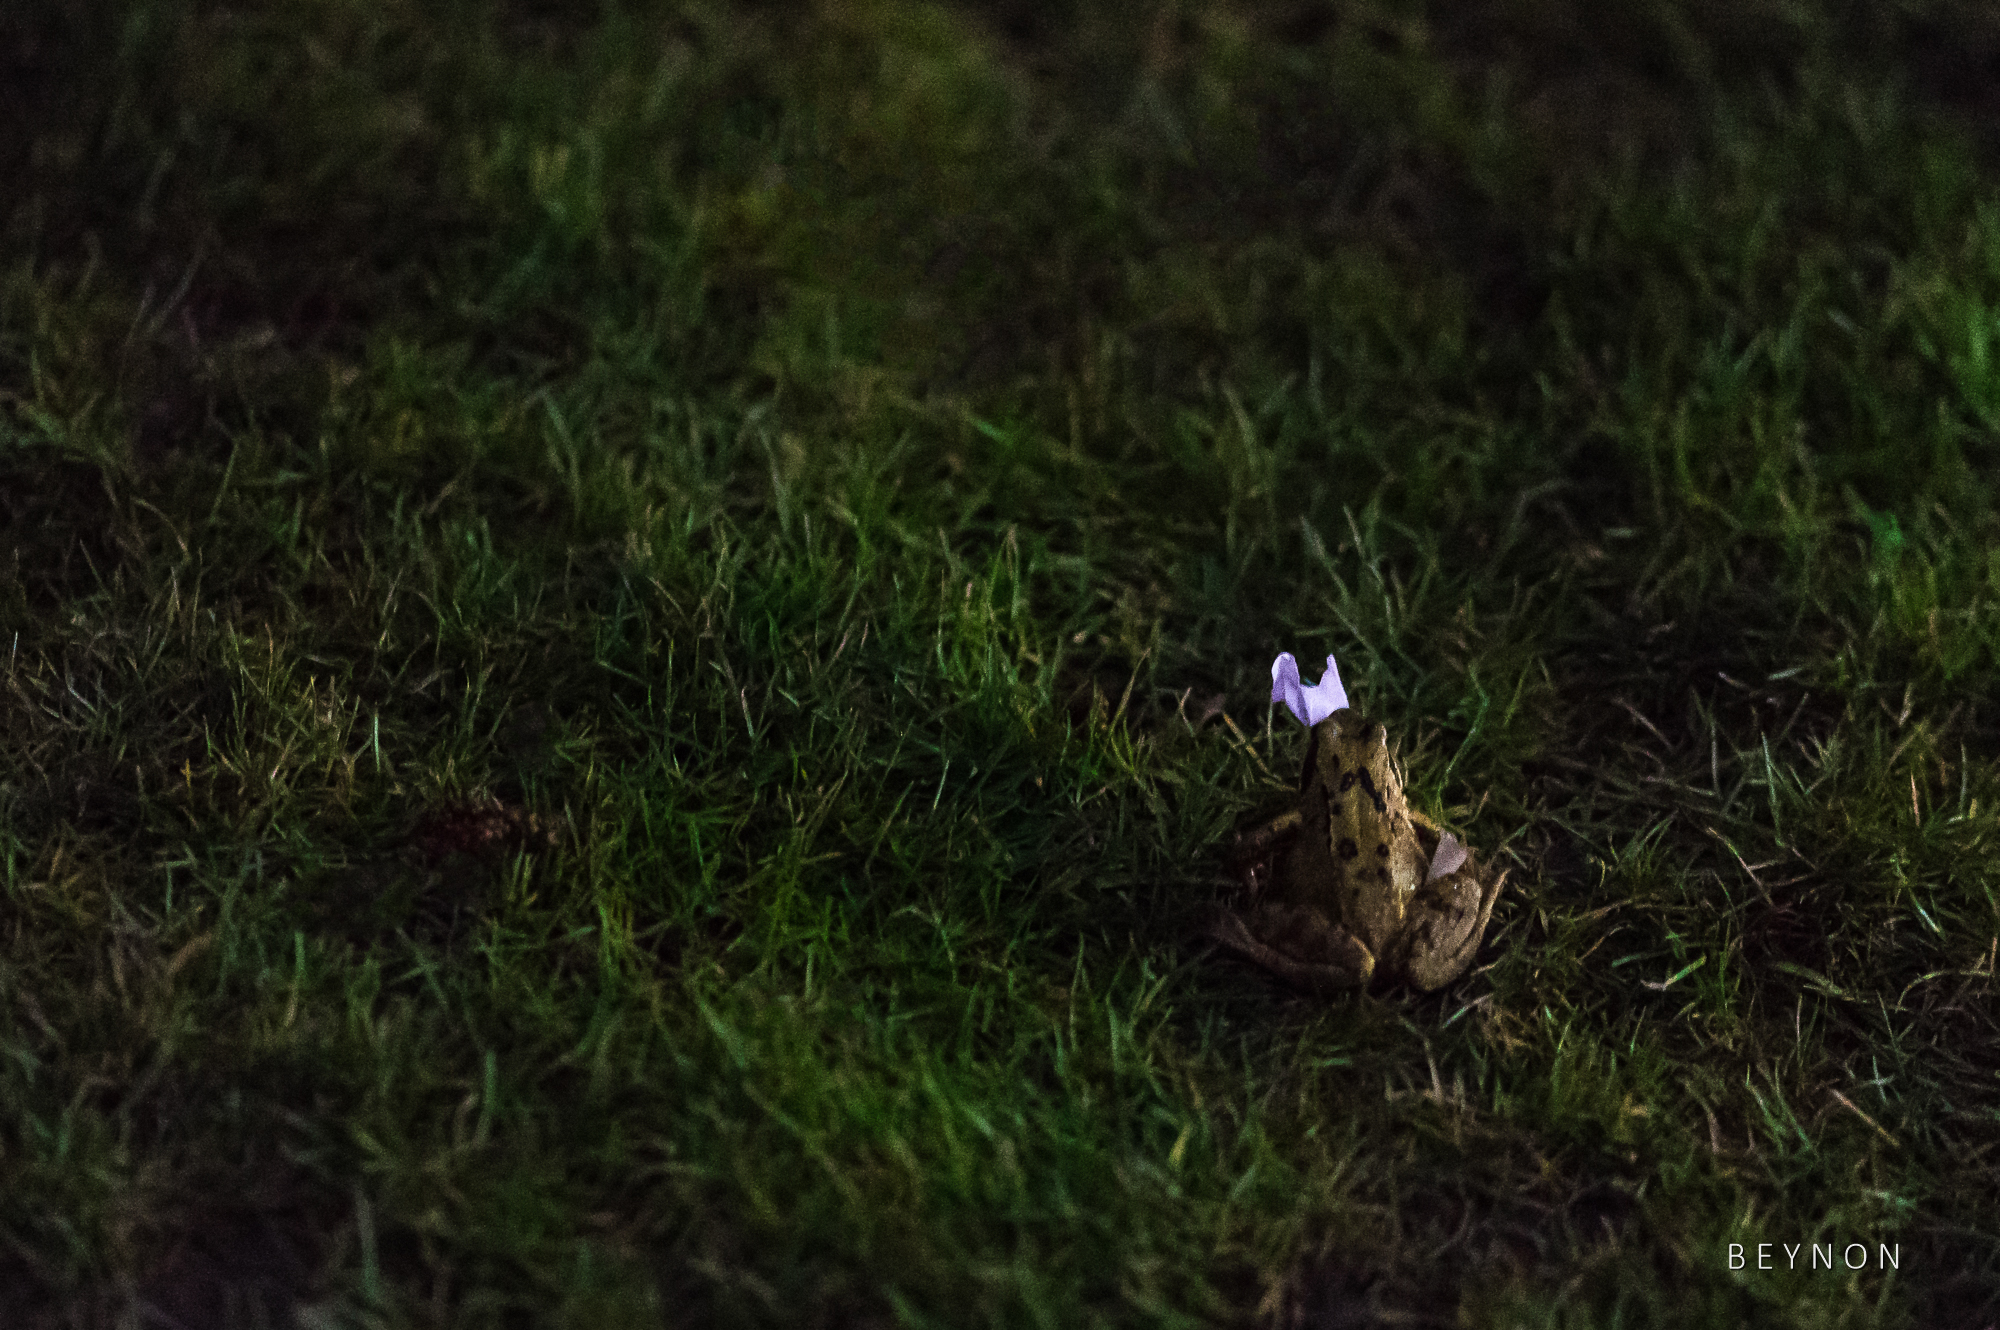 Frog hops away with confetti